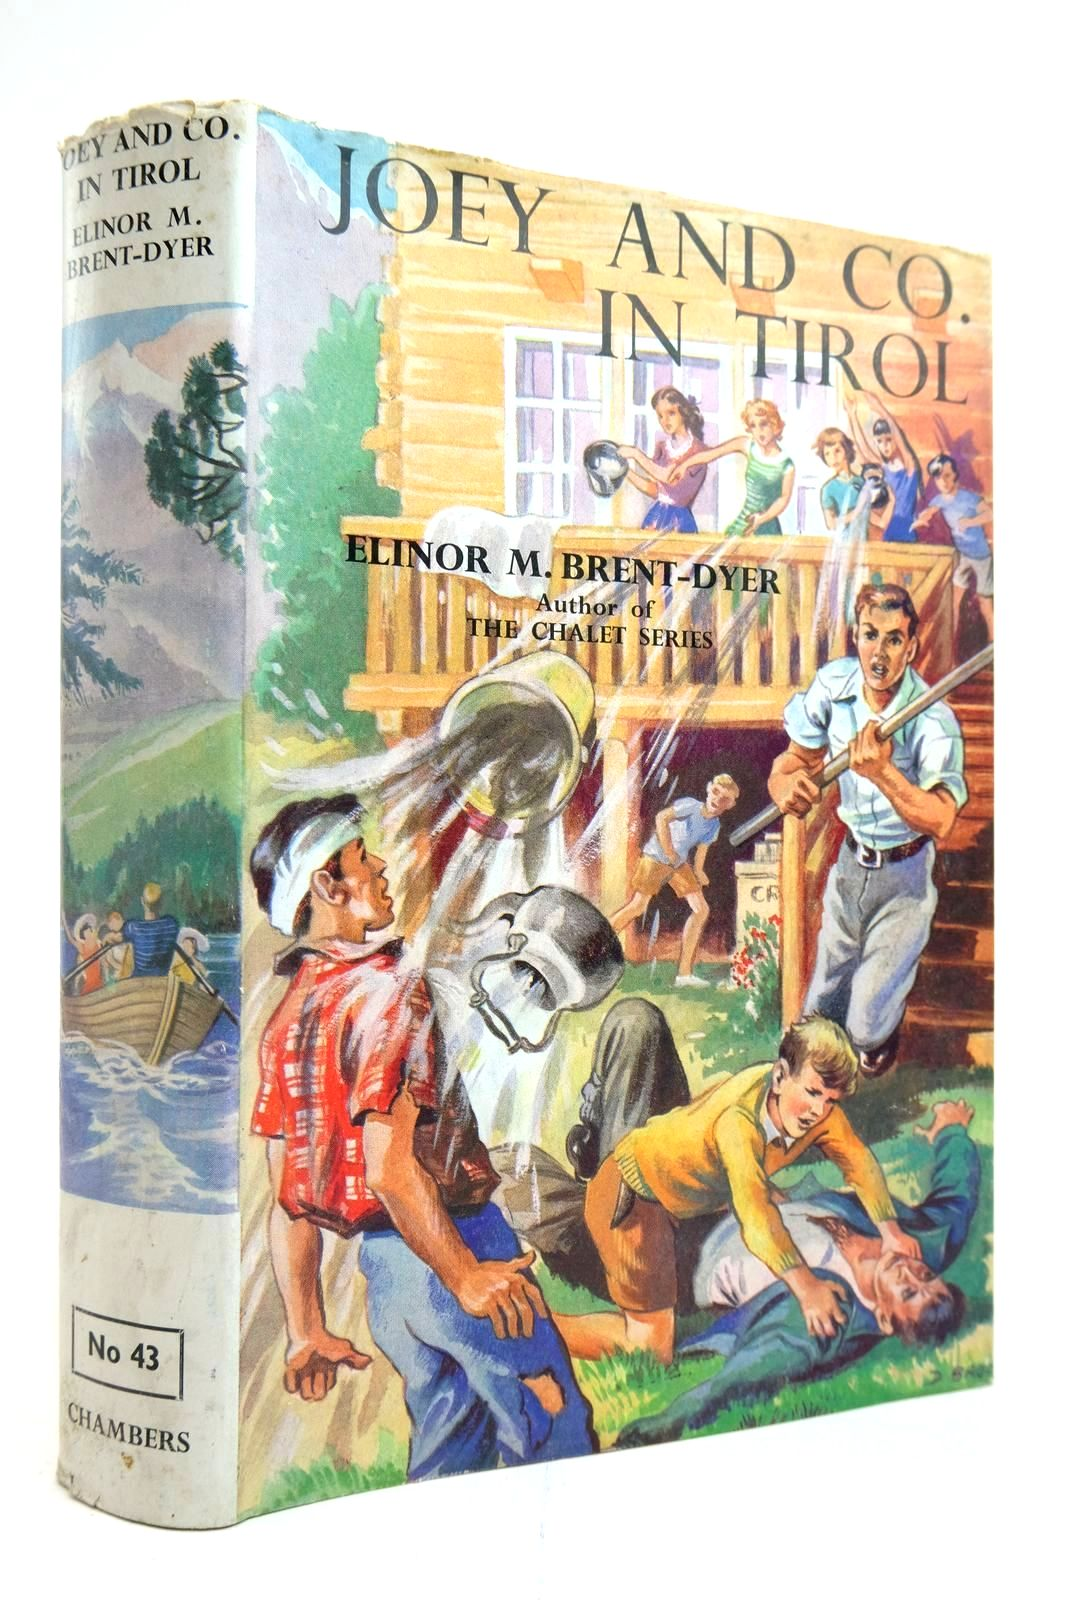 Photo of JOEY AND CO. IN TIROL written by Brent-Dyer, Elinor M. illustrated by Brook, D. published by W. & R. Chambers Limited (STOCK CODE: 2135231)  for sale by Stella & Rose's Books